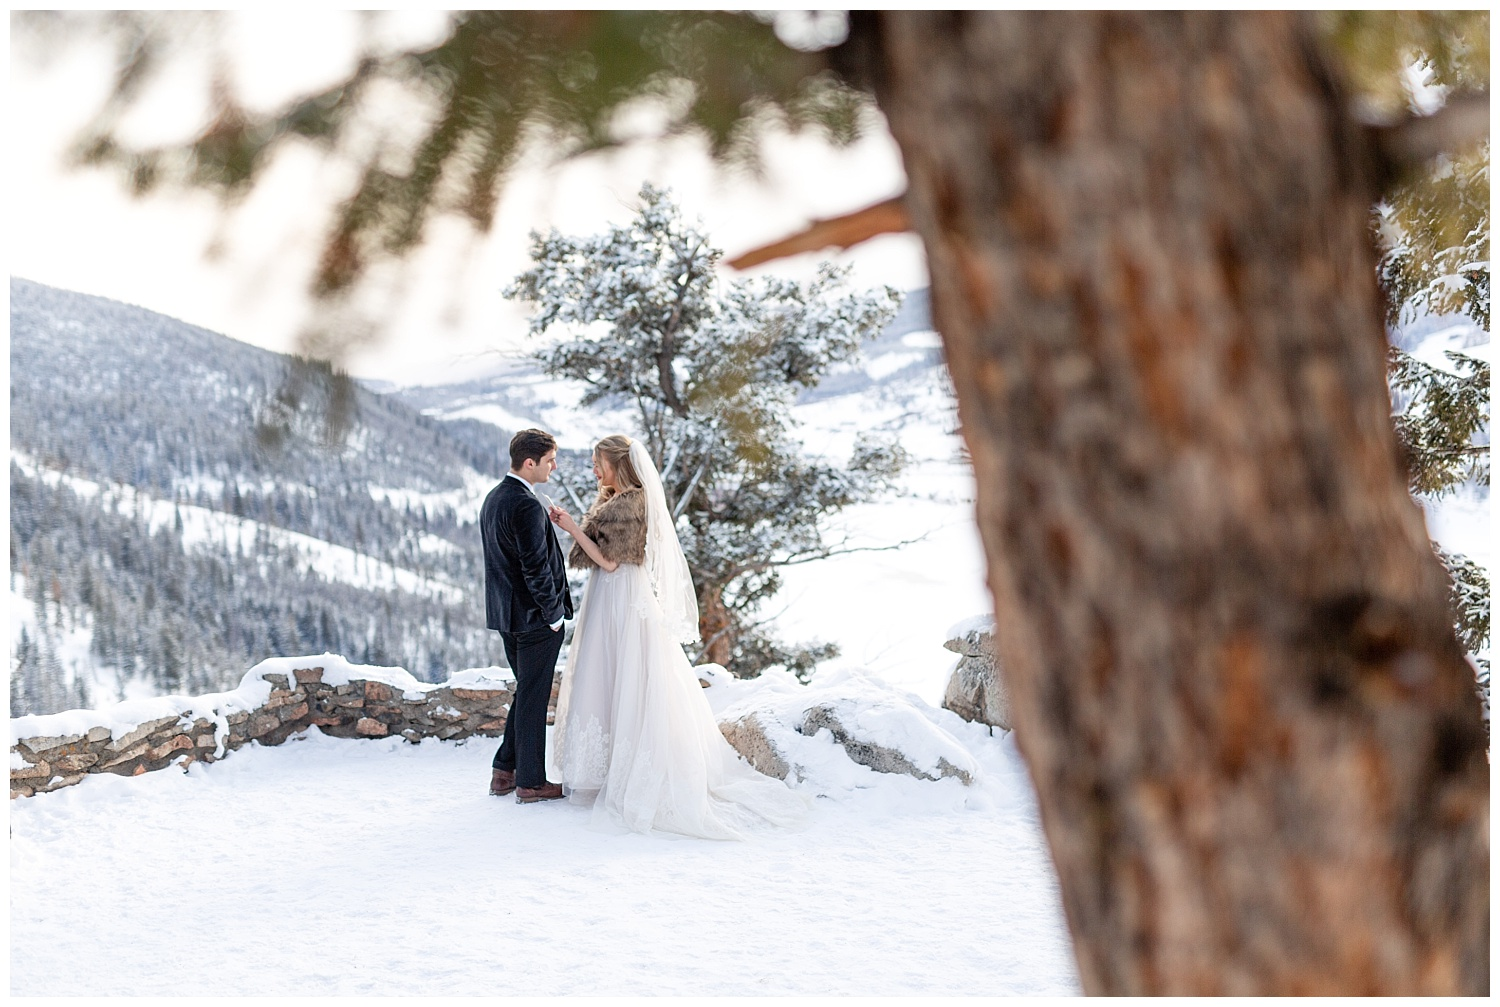 A bride reads her vows to her groom at Sapphire Point in Breckenridge, Colorado